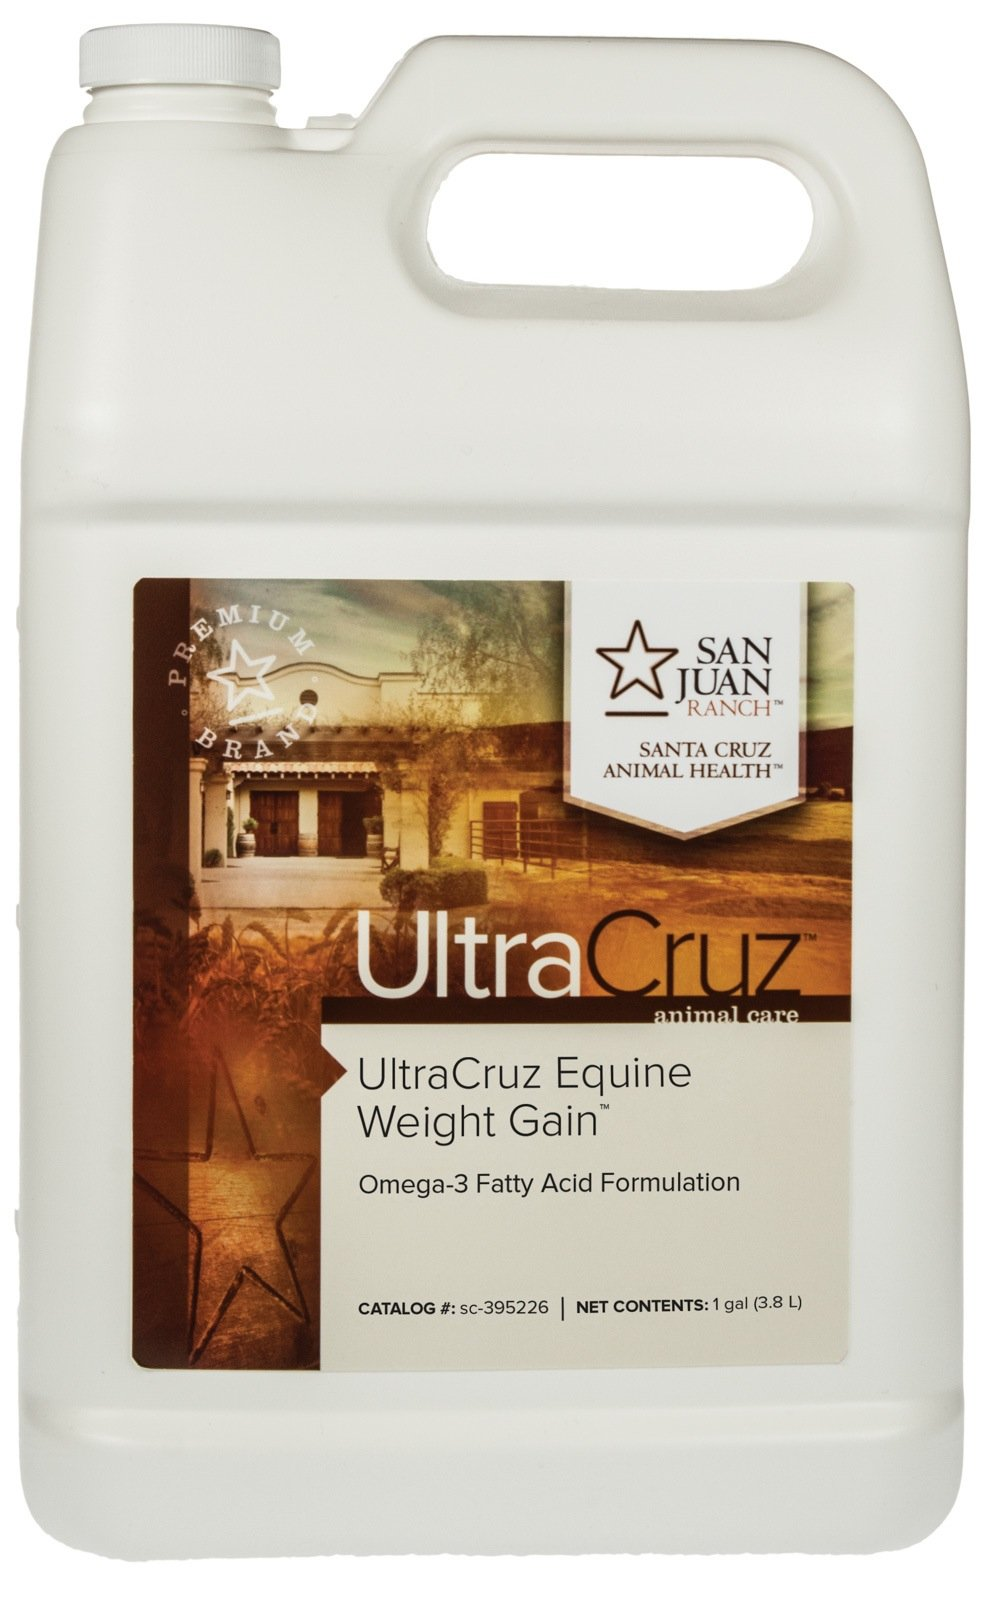 UltraCruz Equine Weight Gain Supplement for Horses, 1 Gallon, Liquid (32 Day Supply) by UltraCruz